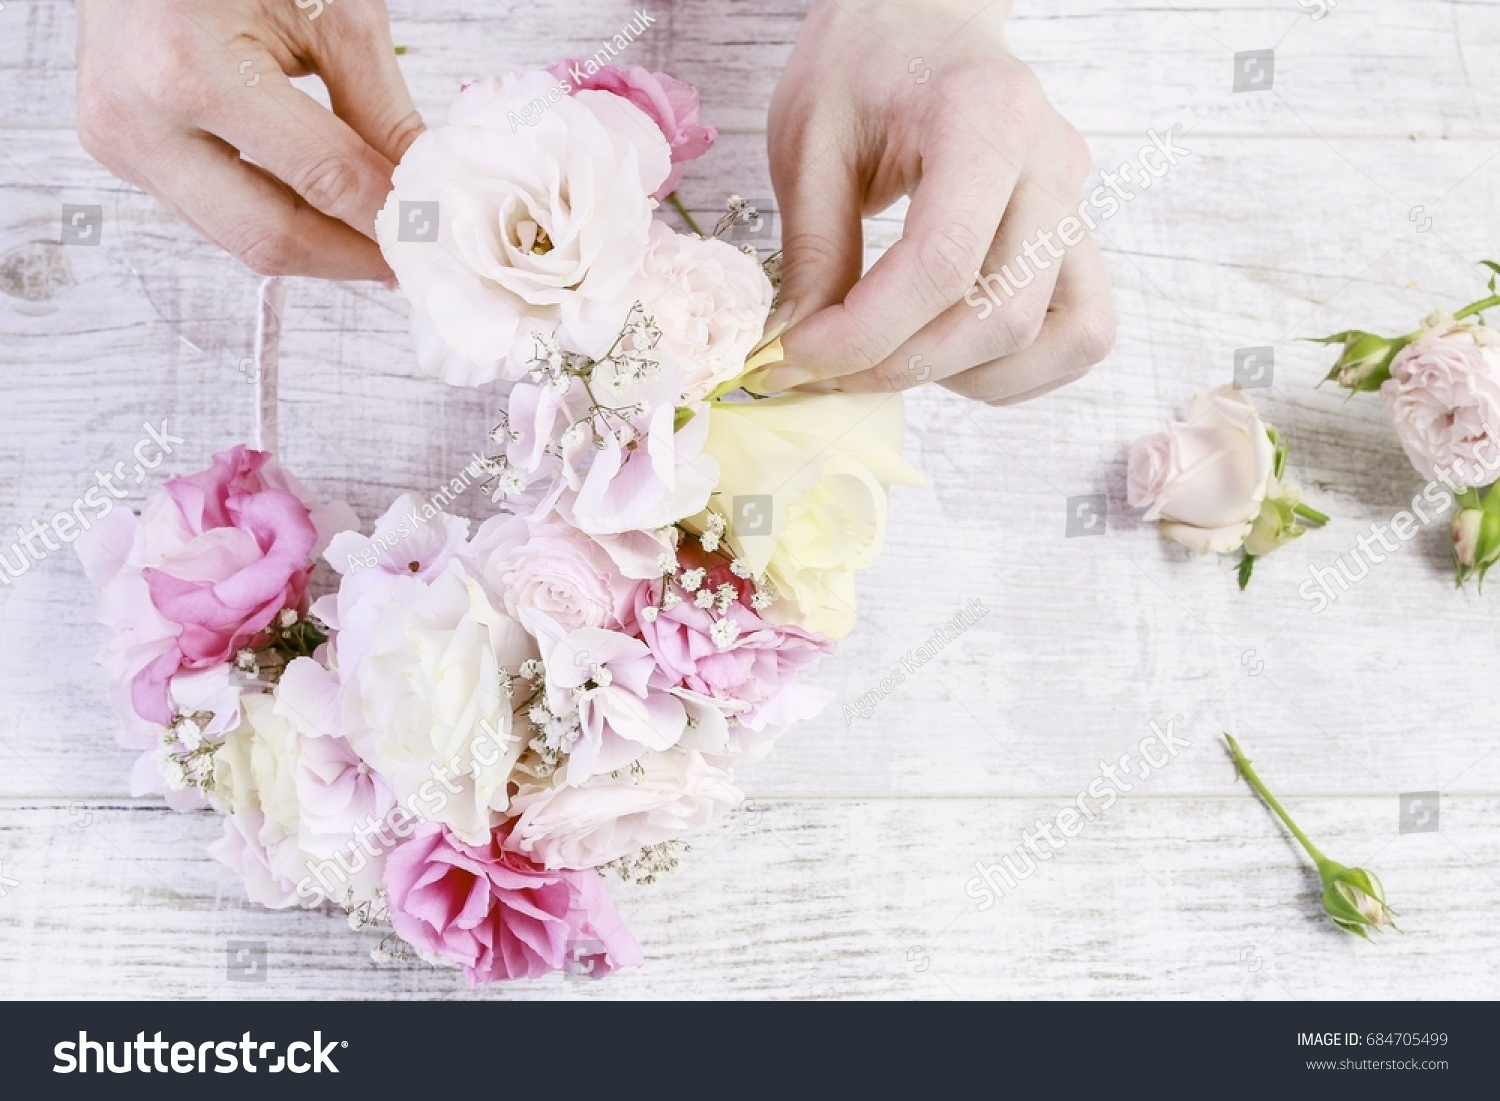 Florist Work How Make Flower Crown Stock Photo Edit Now 684705499